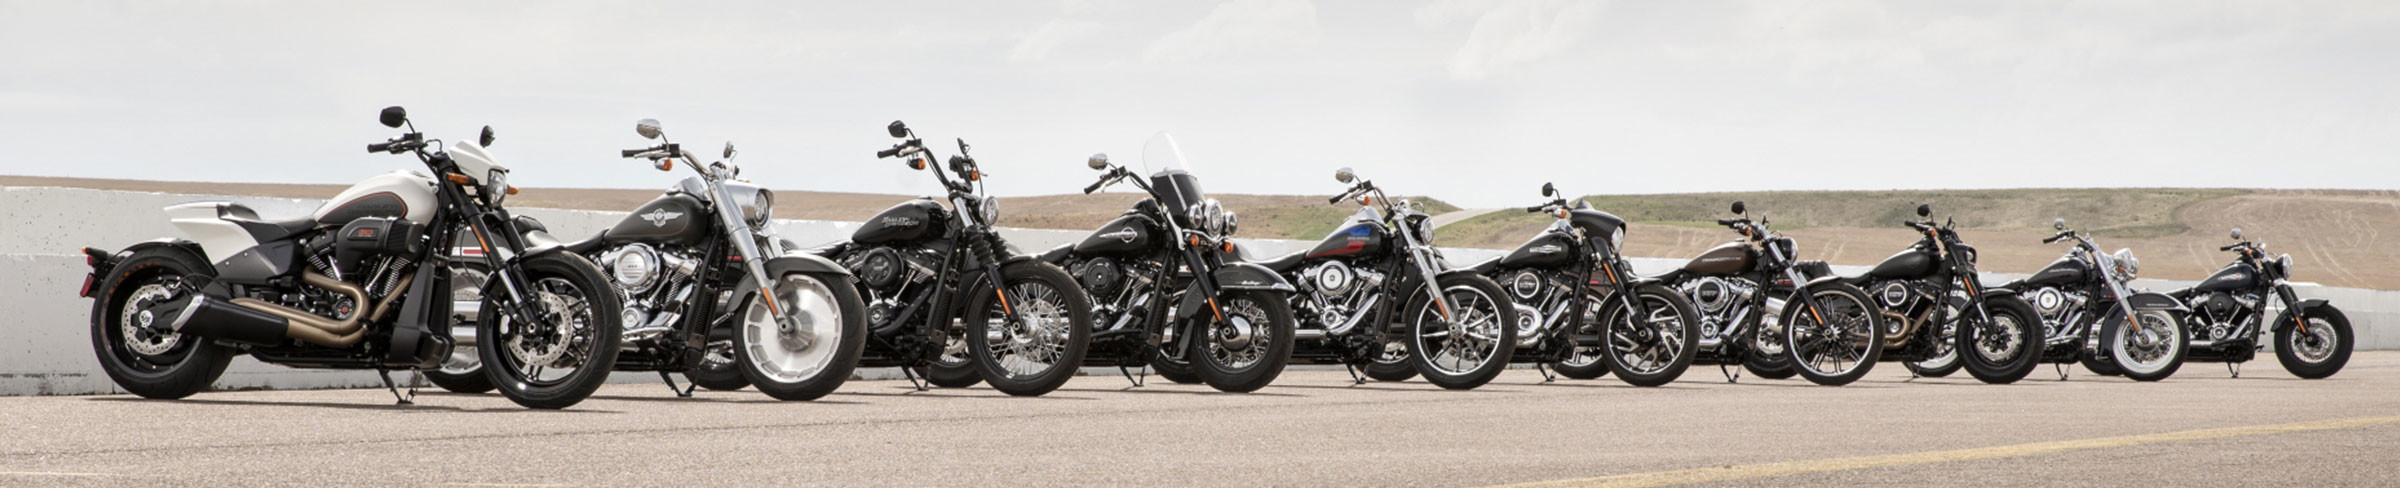 Harley-Davidson® of New Port Richey New Inventory<br>Mark your calendars > NEW MODEL RELEASE DATE JAN. 19, 2021